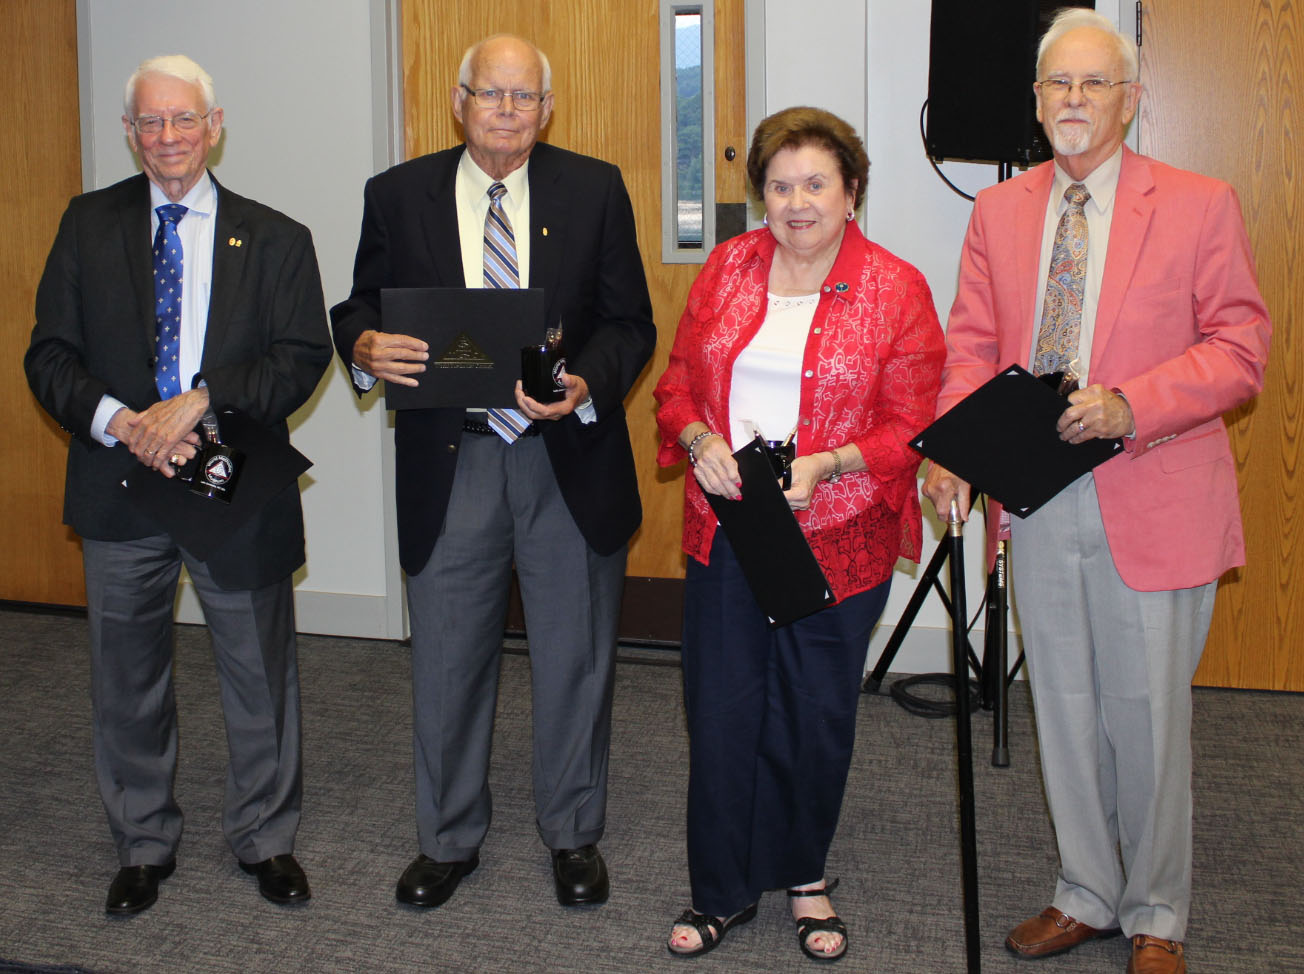 2017 Recognition of retiring board members